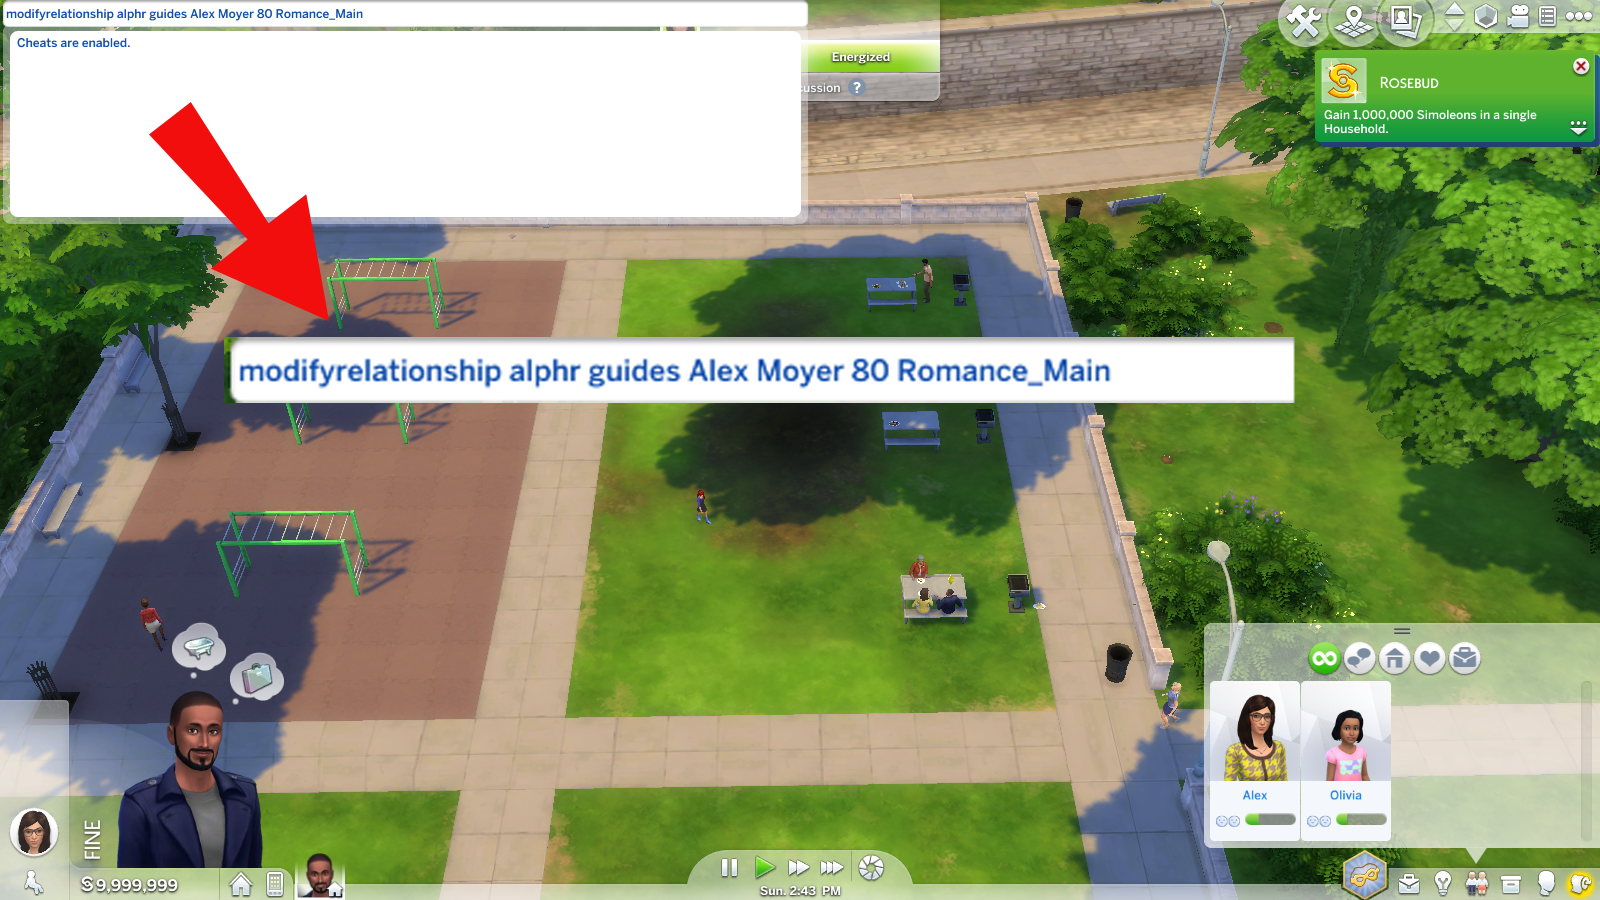 Relationships sims modify 4 cheat Sims 4